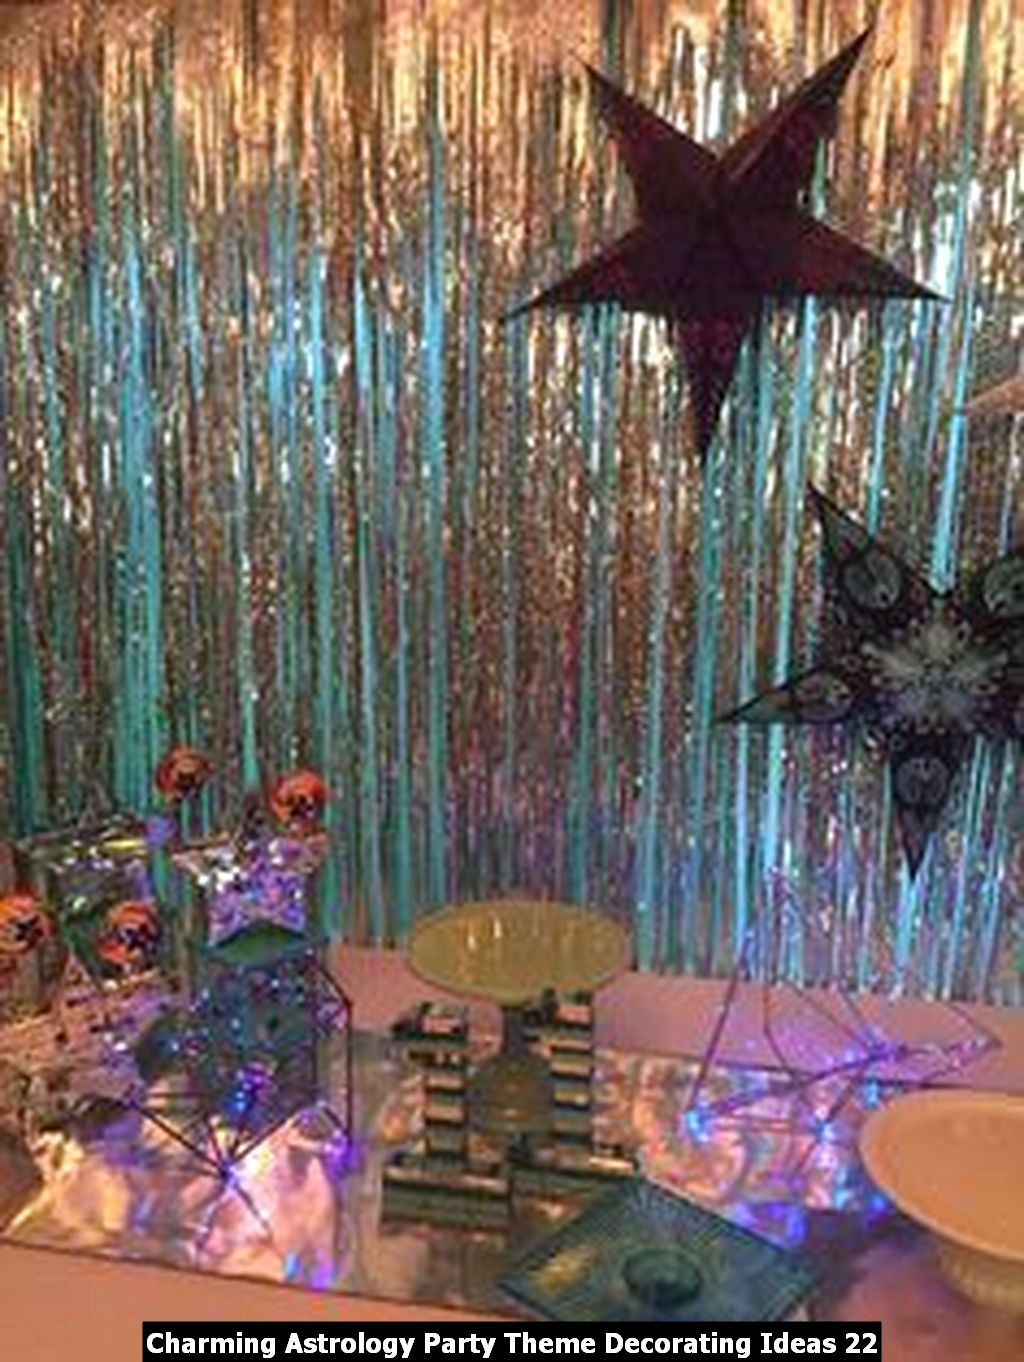 Charming Astrology Party Theme Decorating Ideas 22